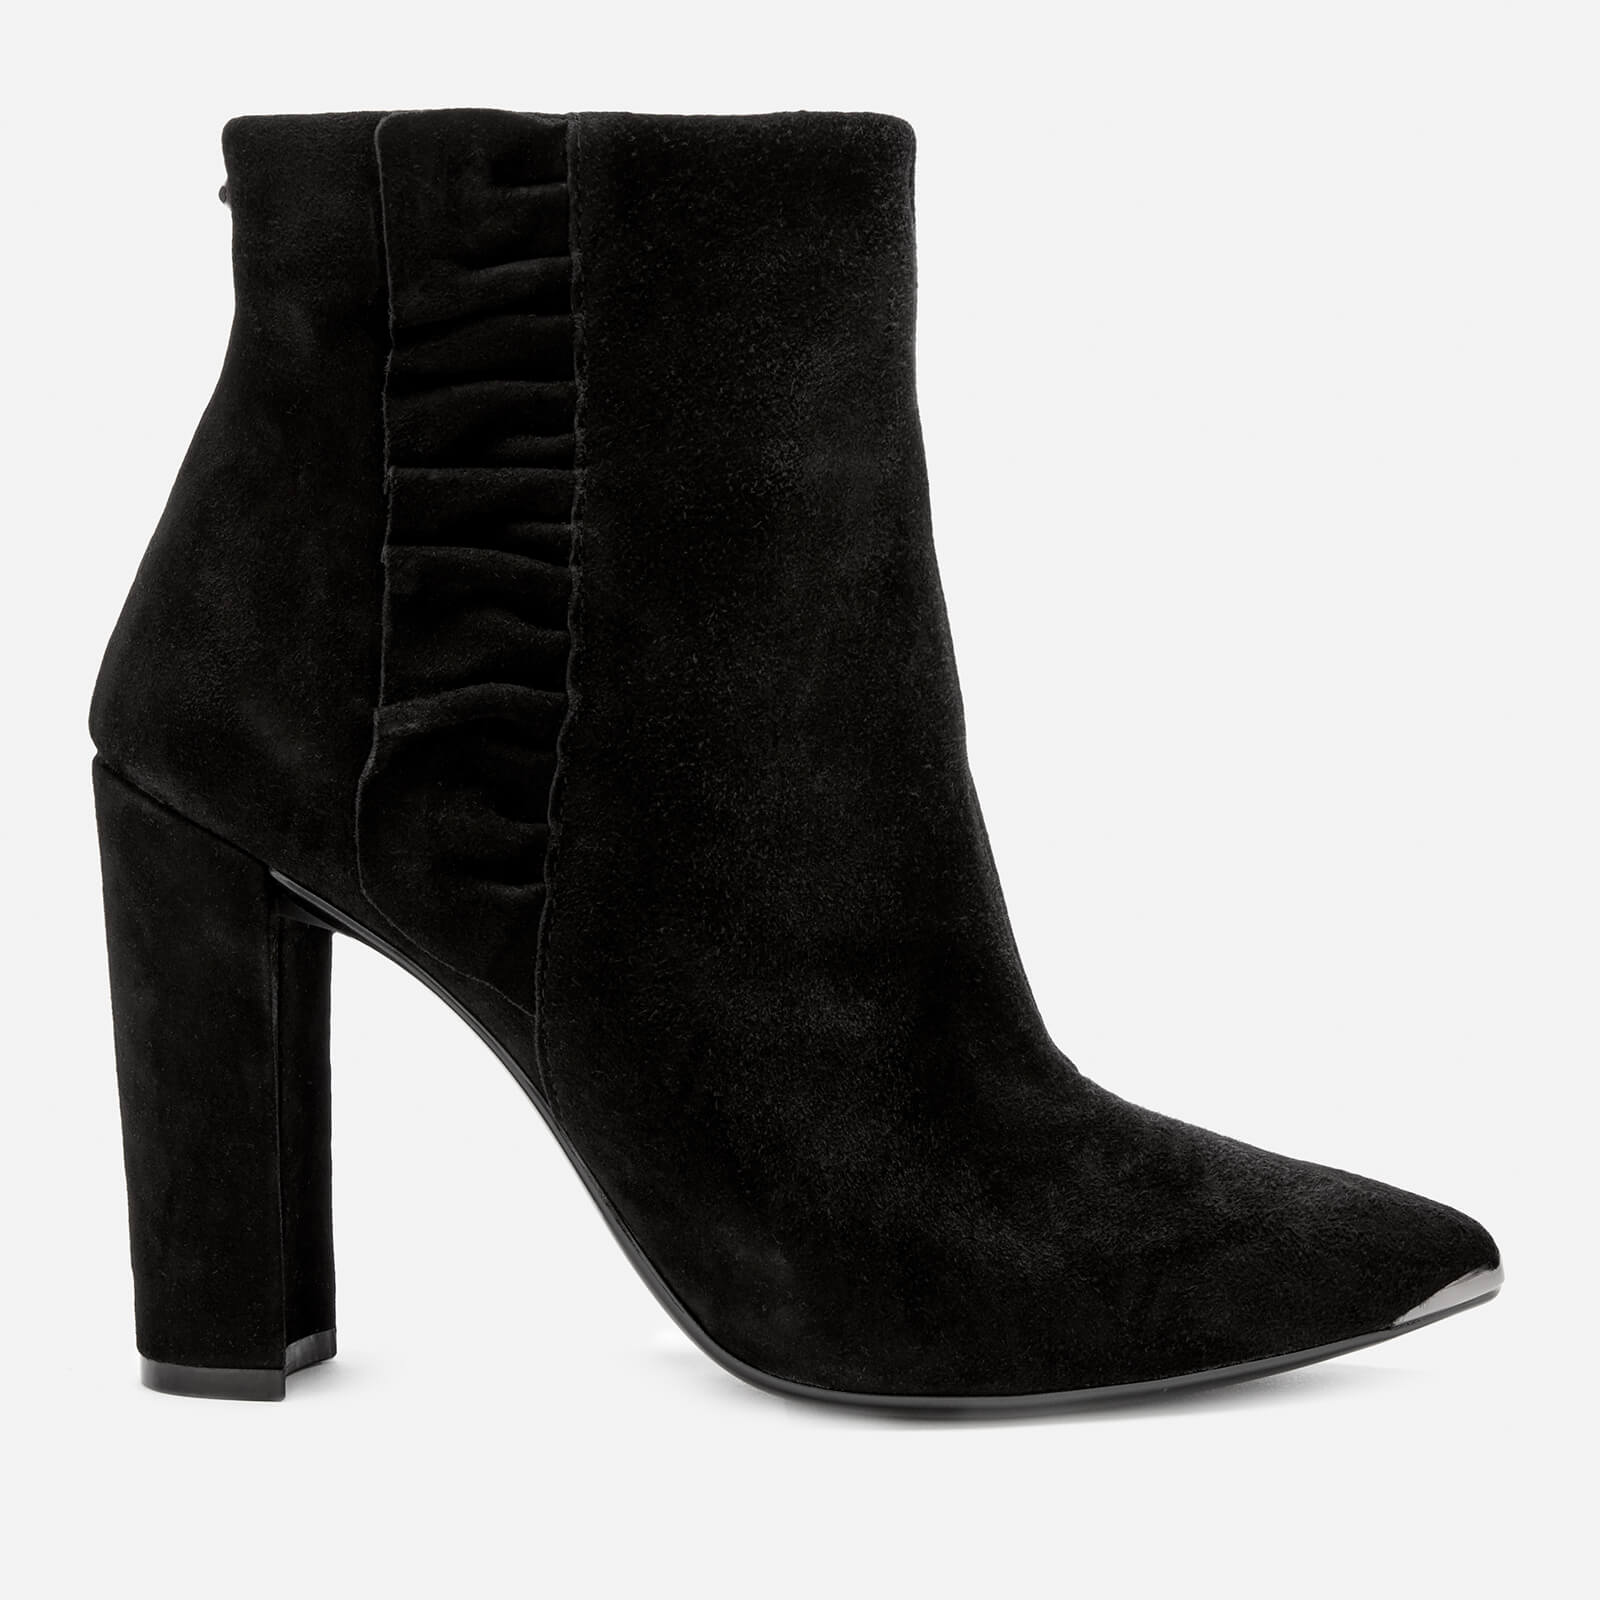 b5bc18abc Ted Baker Women's Frillis Suede Heeled Ankle Boots - Black | FREE UK  Delivery | Allsole